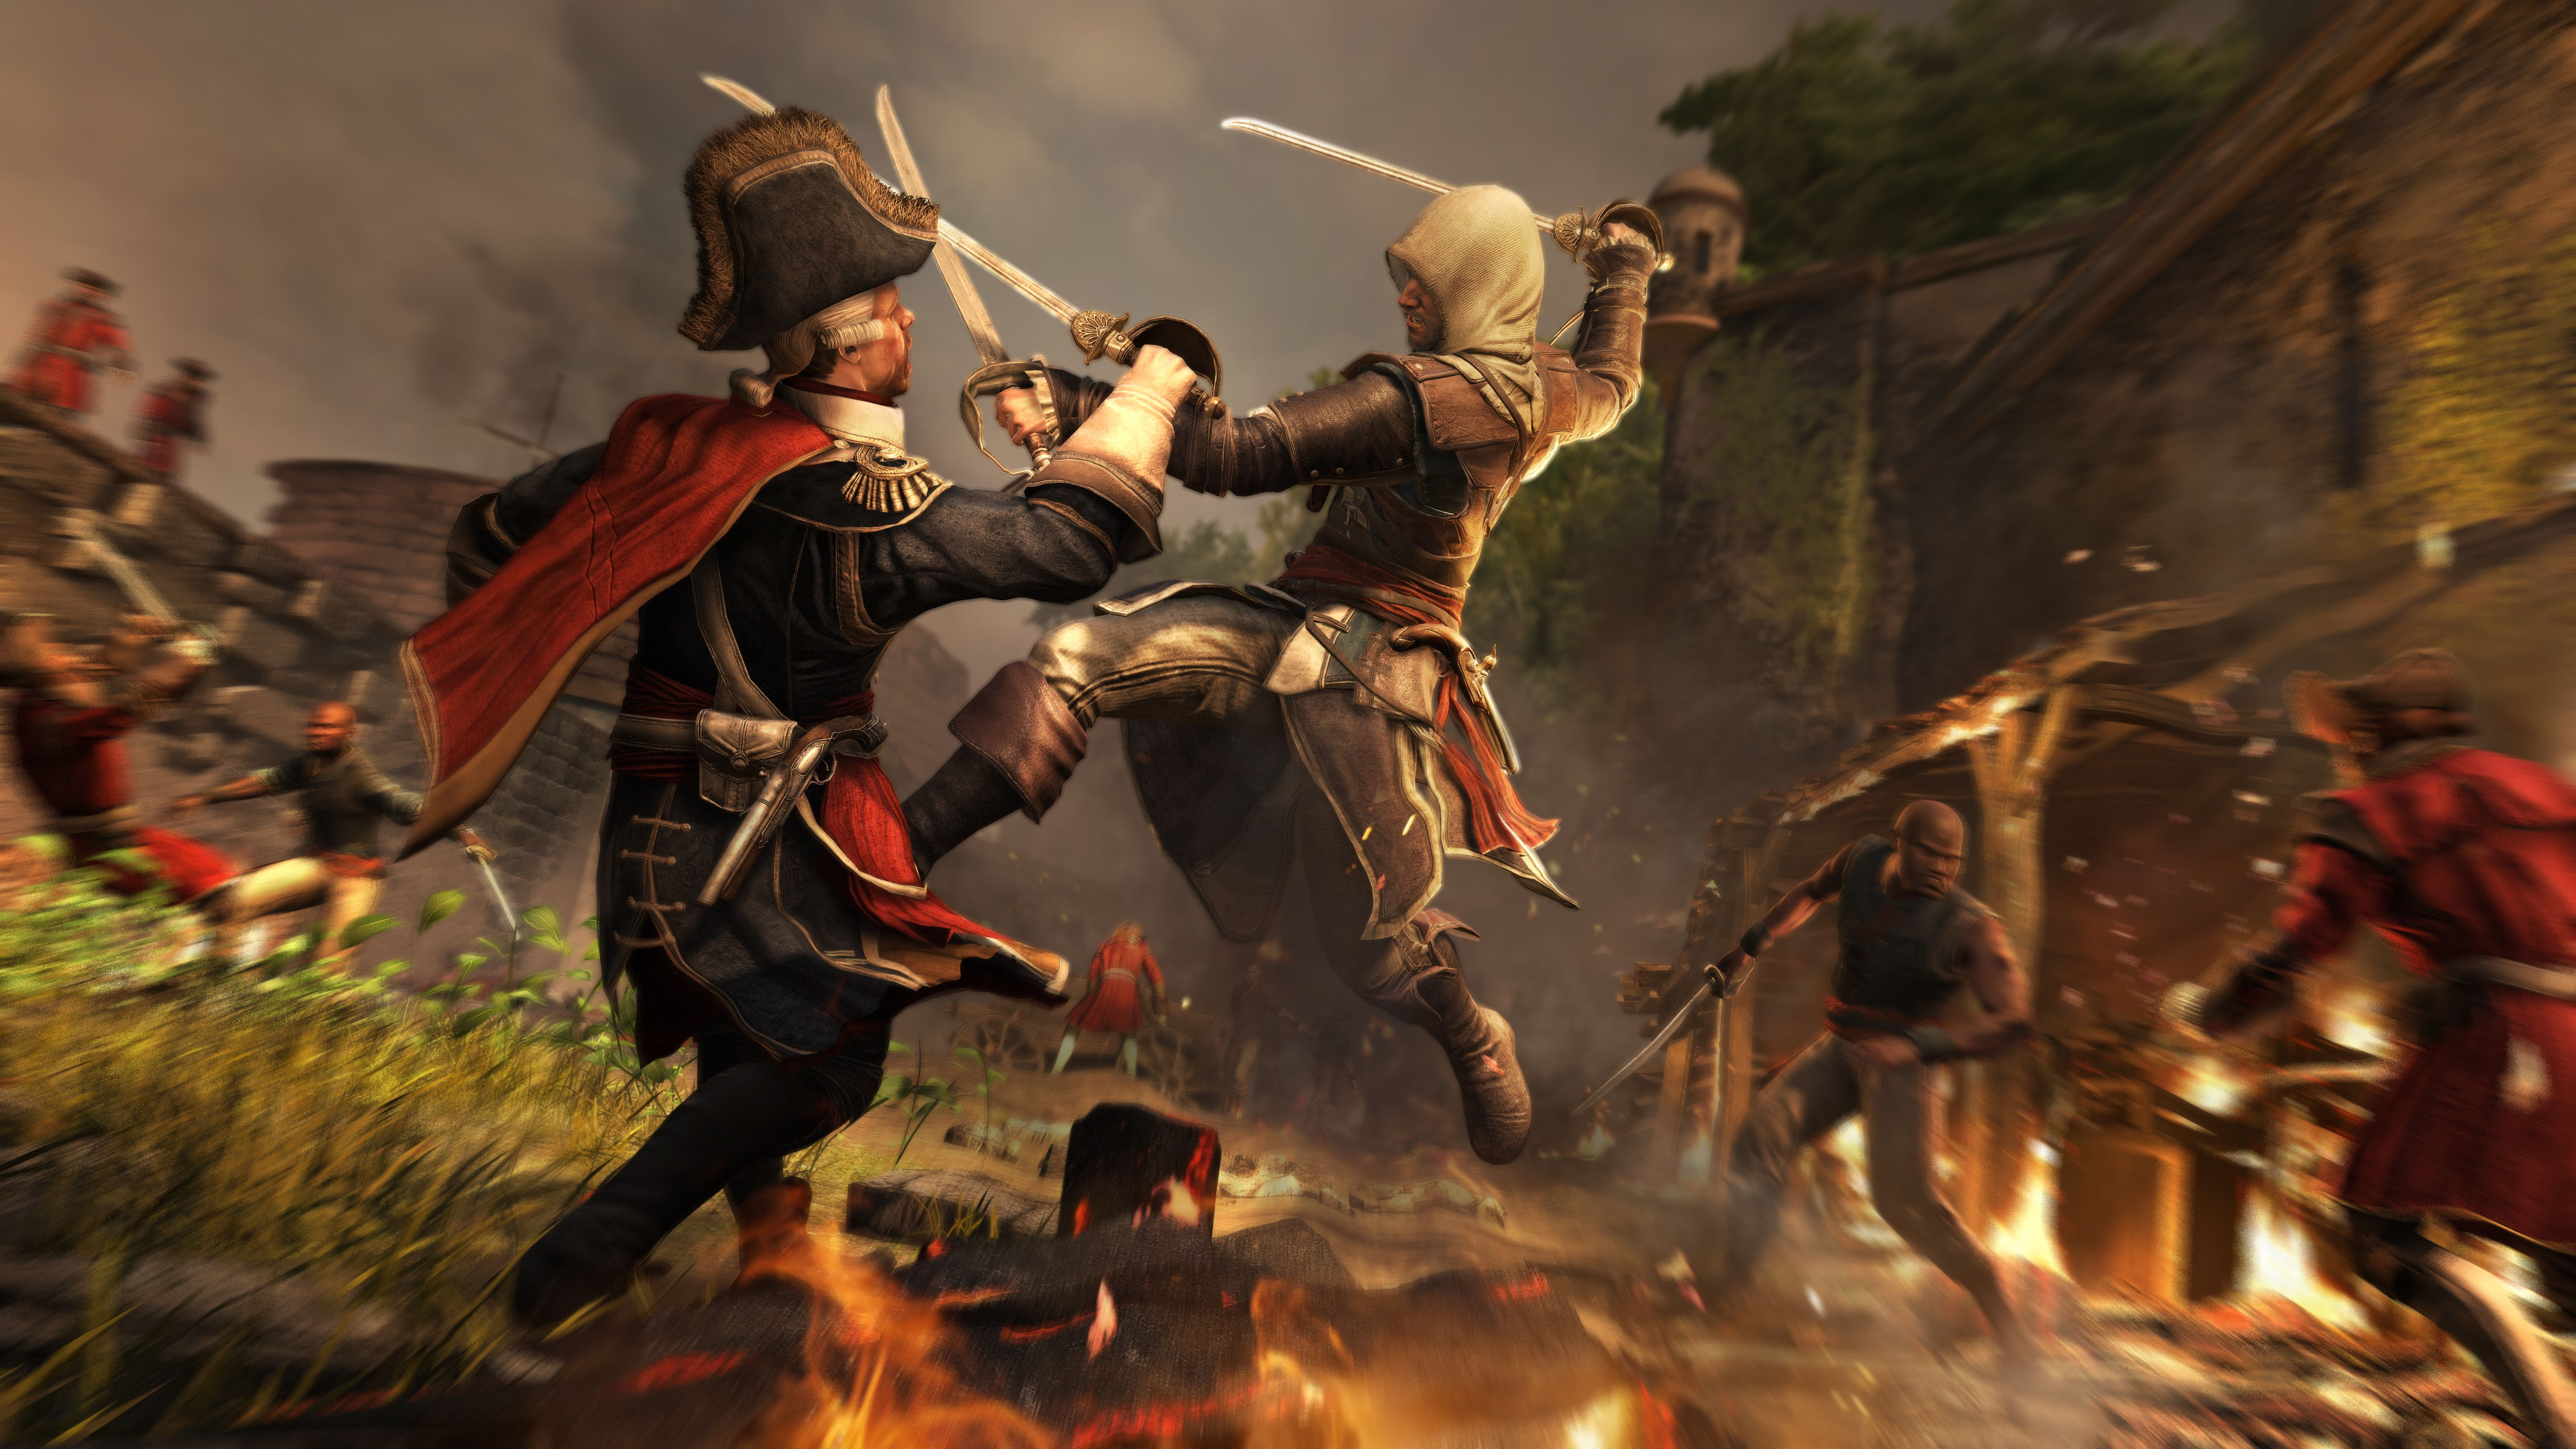 Assassins-Creed-IV-Black-Flag_2013_07-22-13_003.jpg